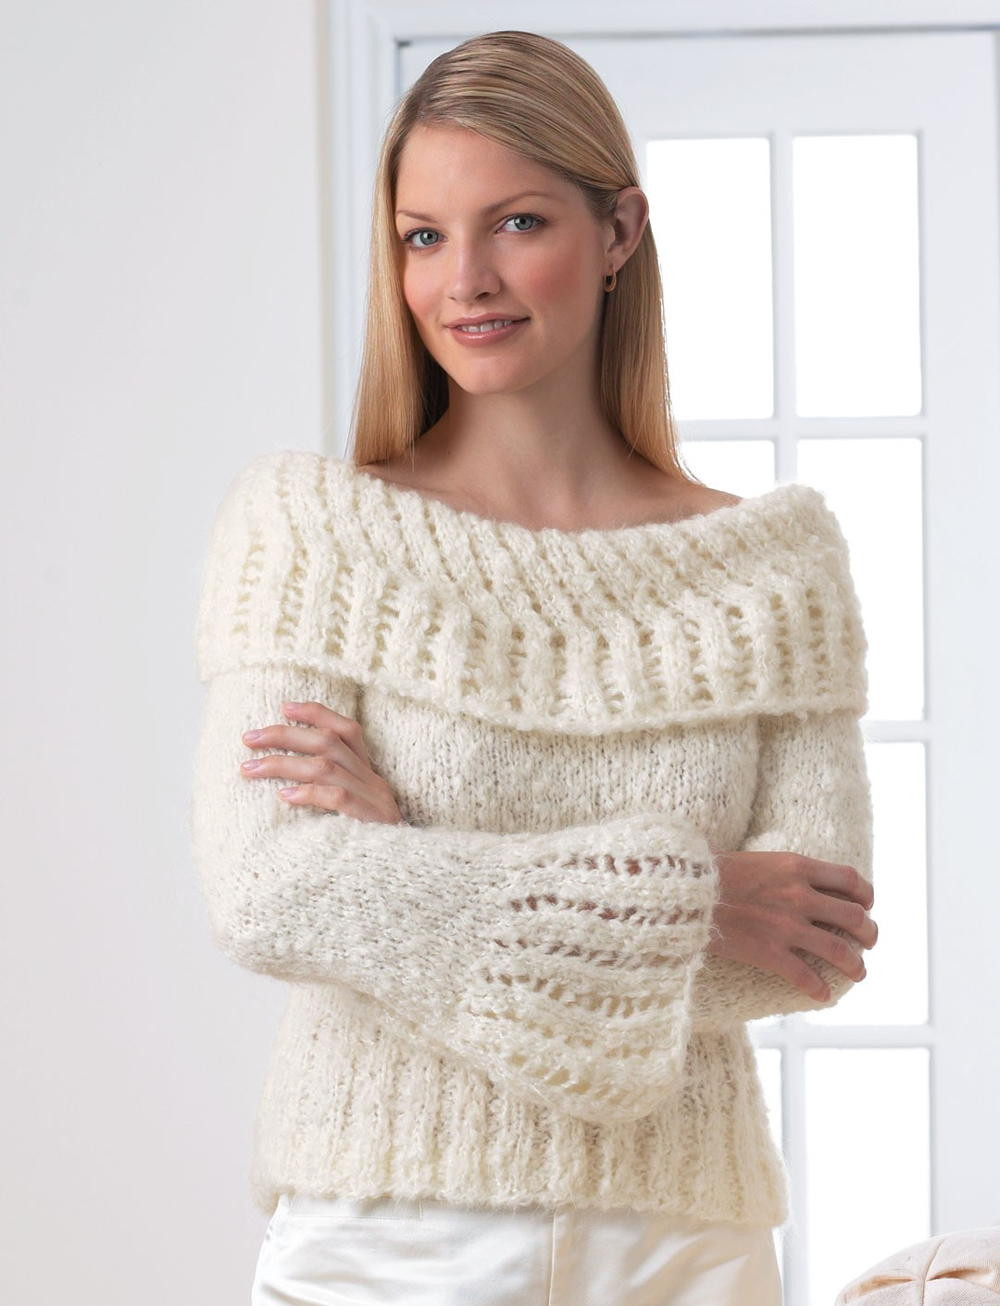 Free Knitting Patterns Sweaters Inspirational Lacework Sweater Of Charming 41 Images Free Knitting Patterns Sweaters